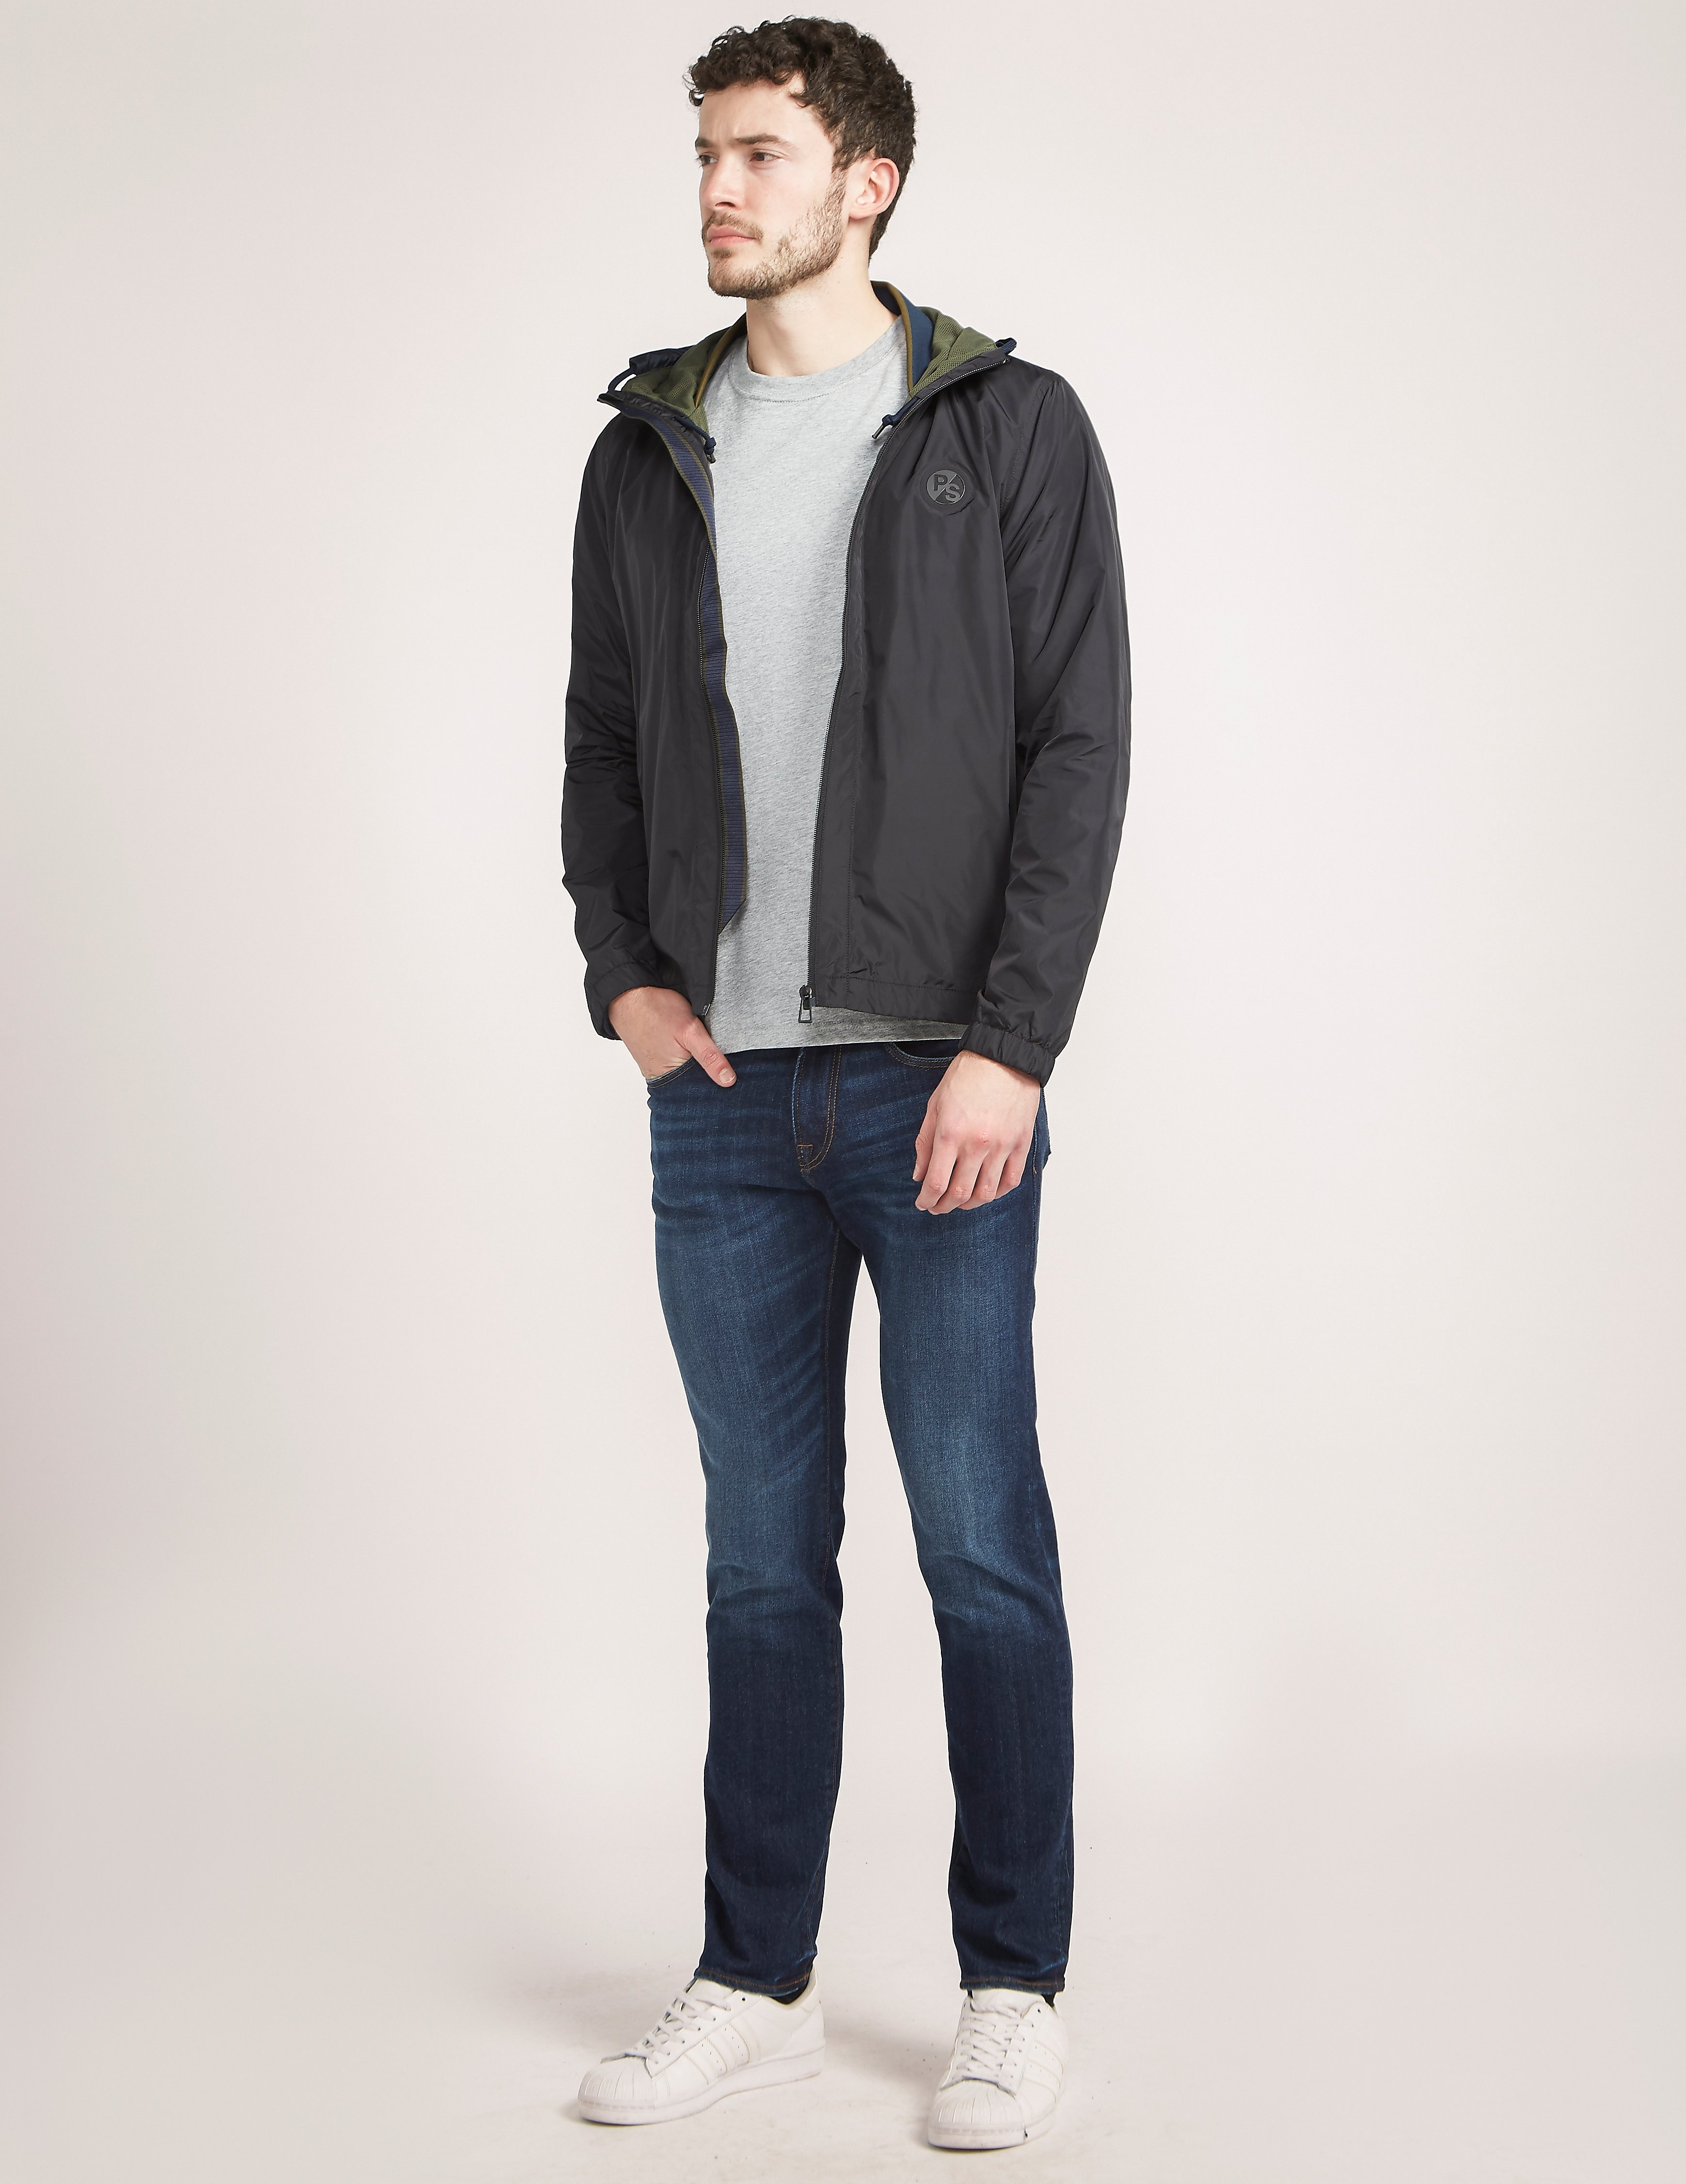 Paul Smith Lightweight Shower Jacket